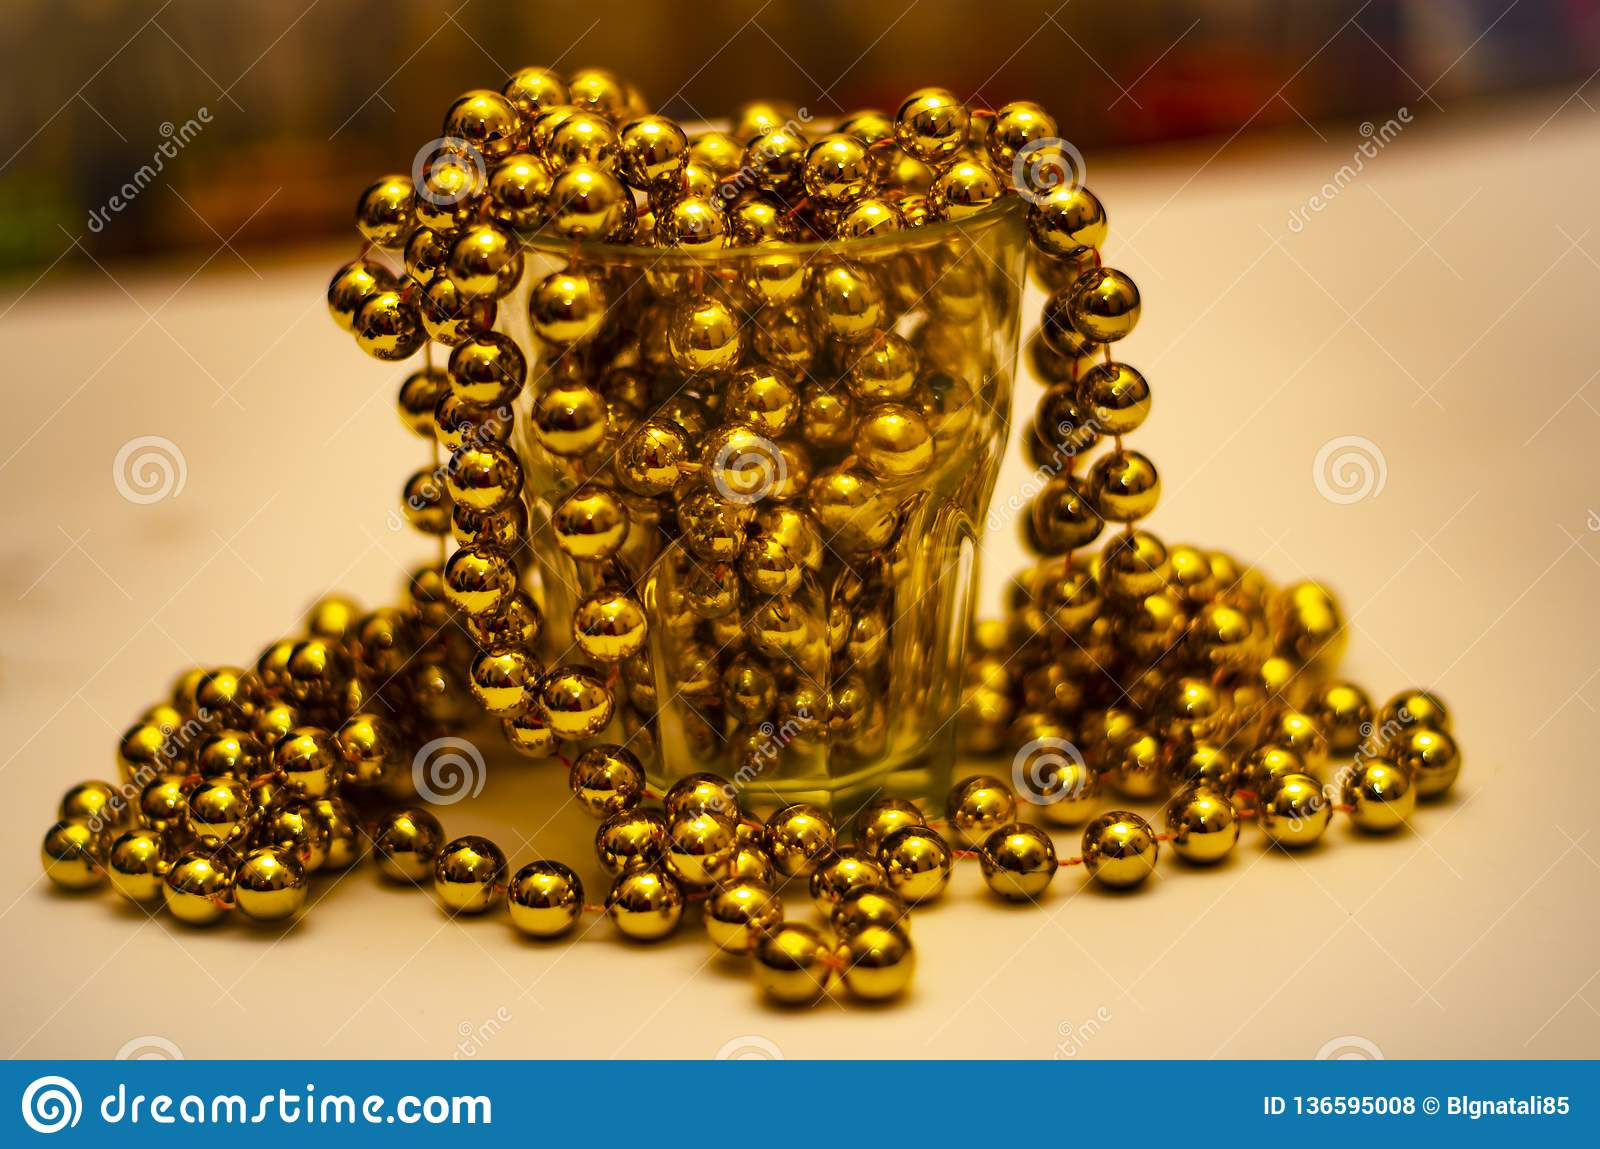 Close-up of gold beads in a glass with a color bottom with a soft blurred background